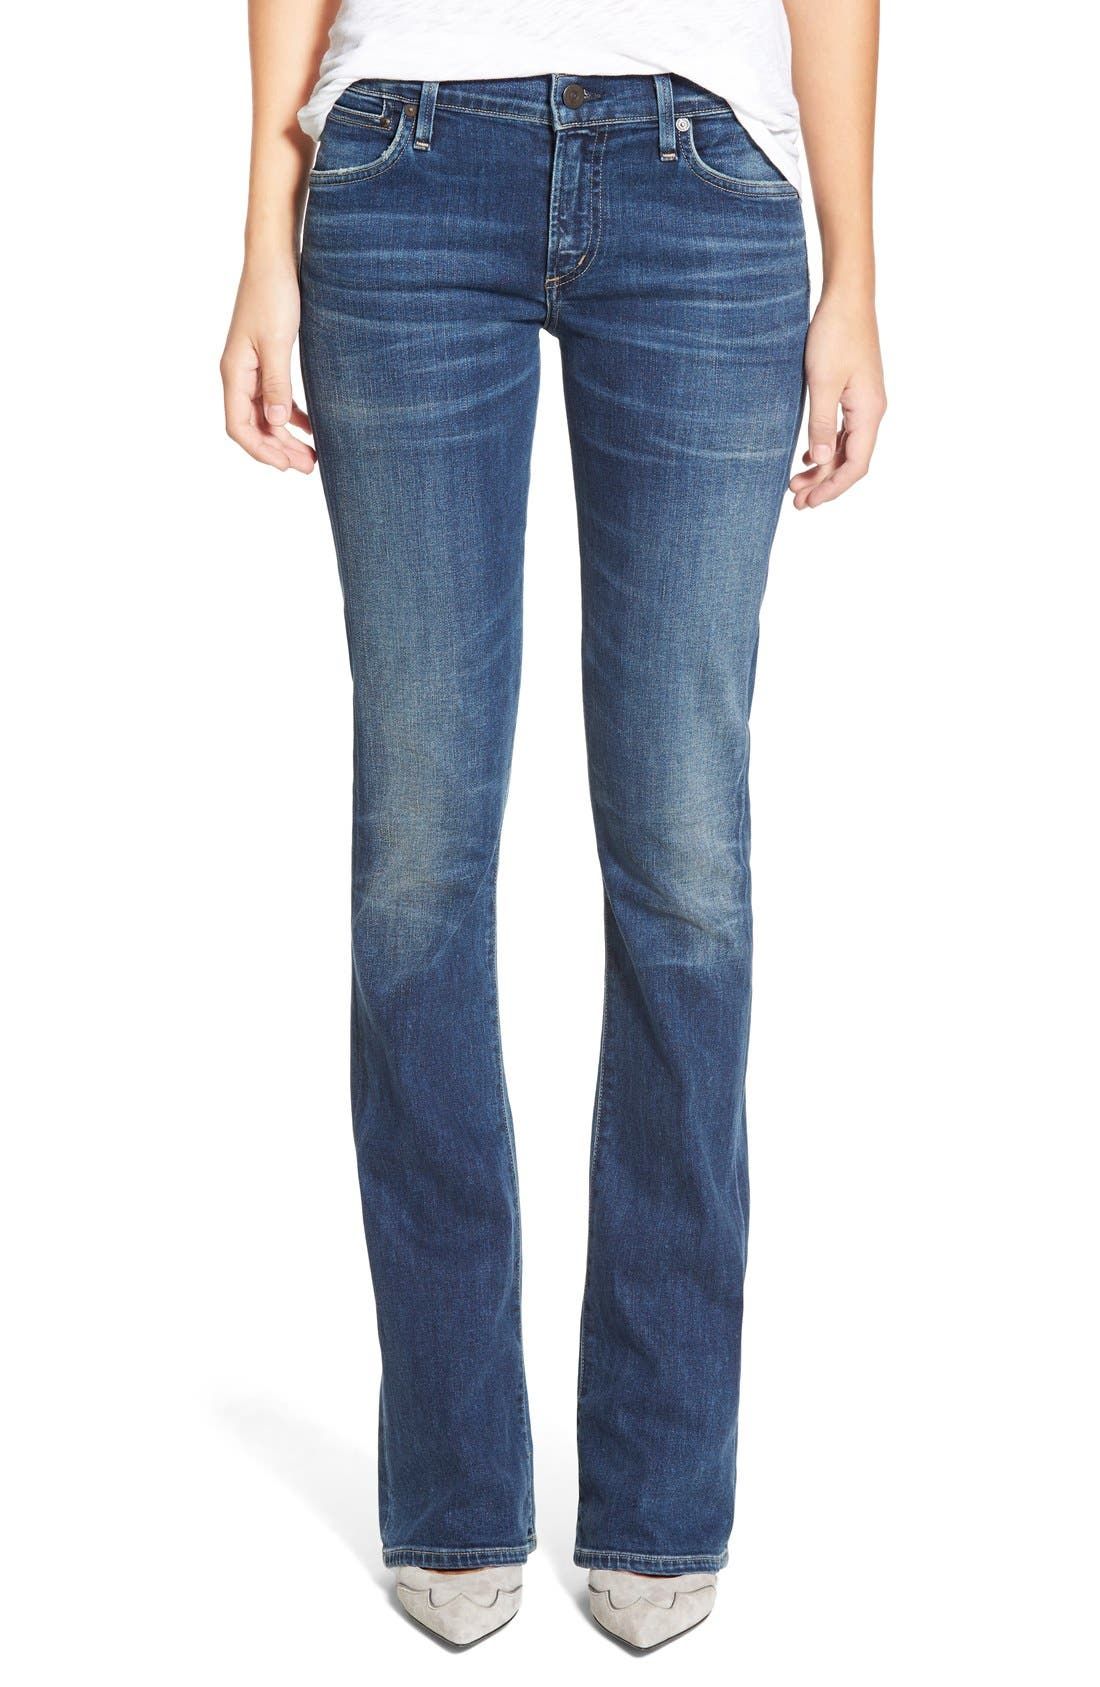 Womens skinny bootcut jeans